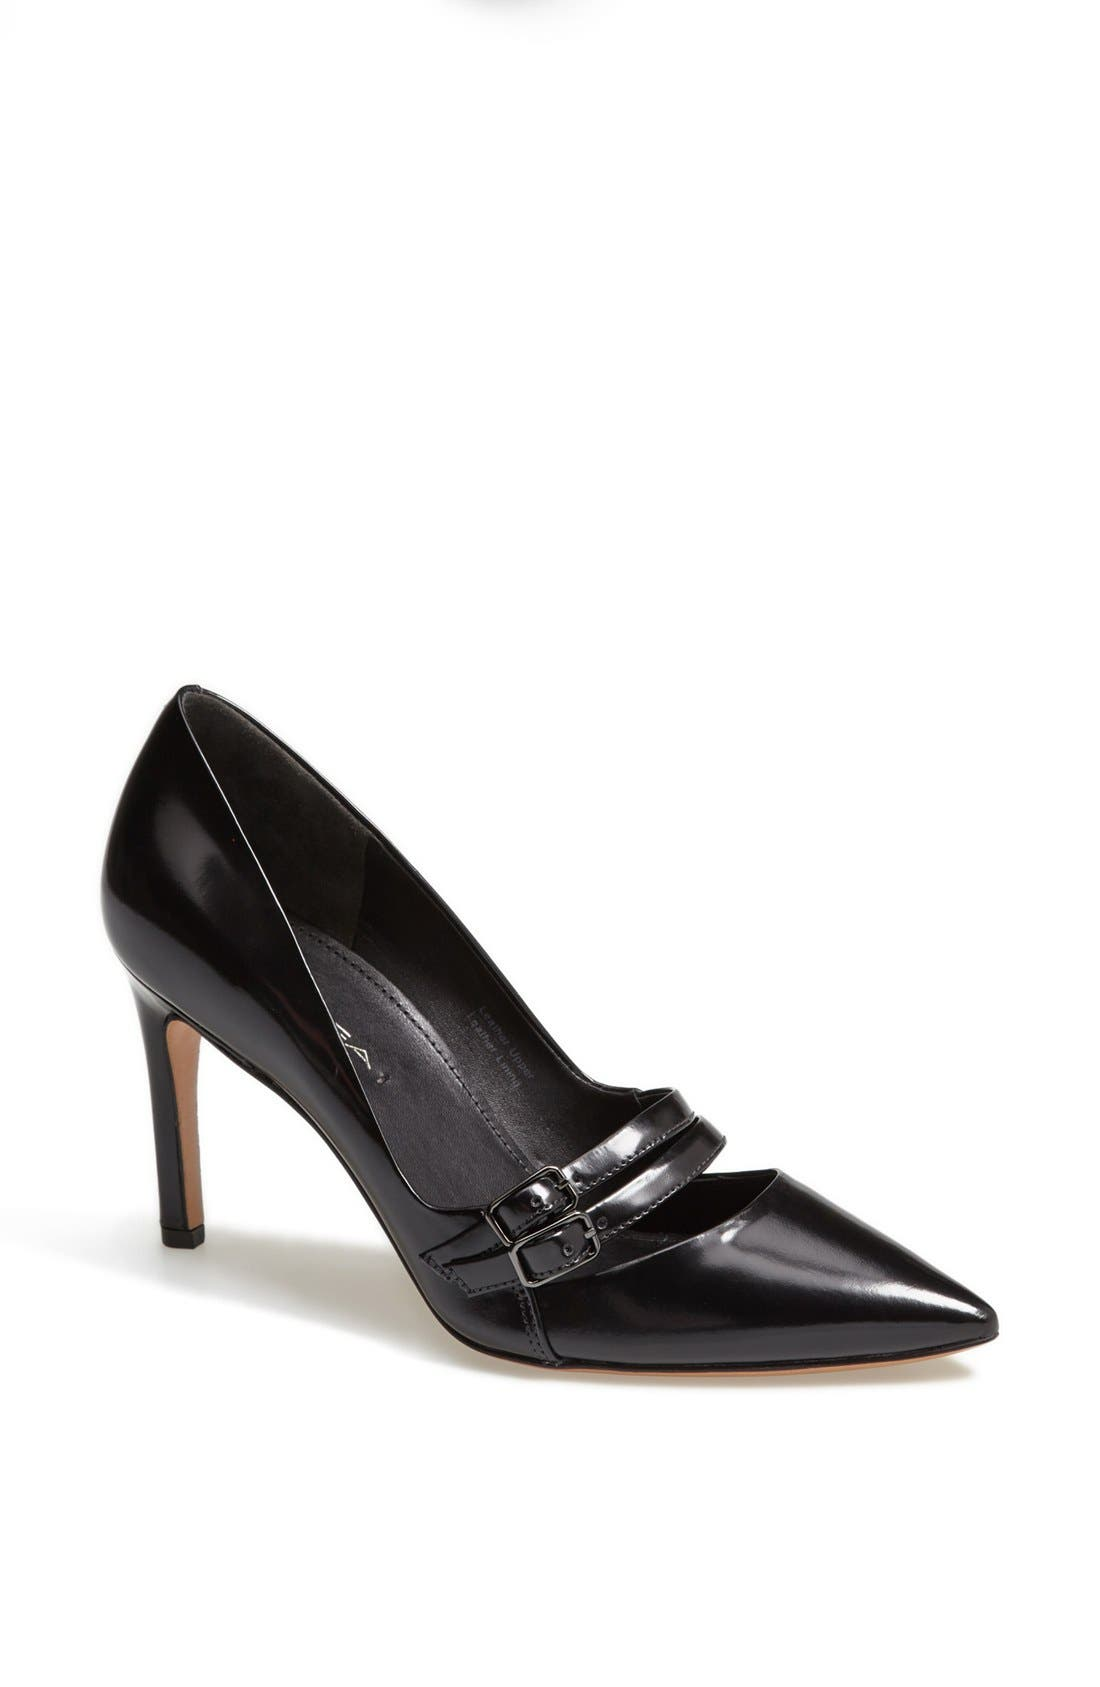 Alternate Image 1 Selected - Via Spiga 'Irving' Pointy Toe Pump